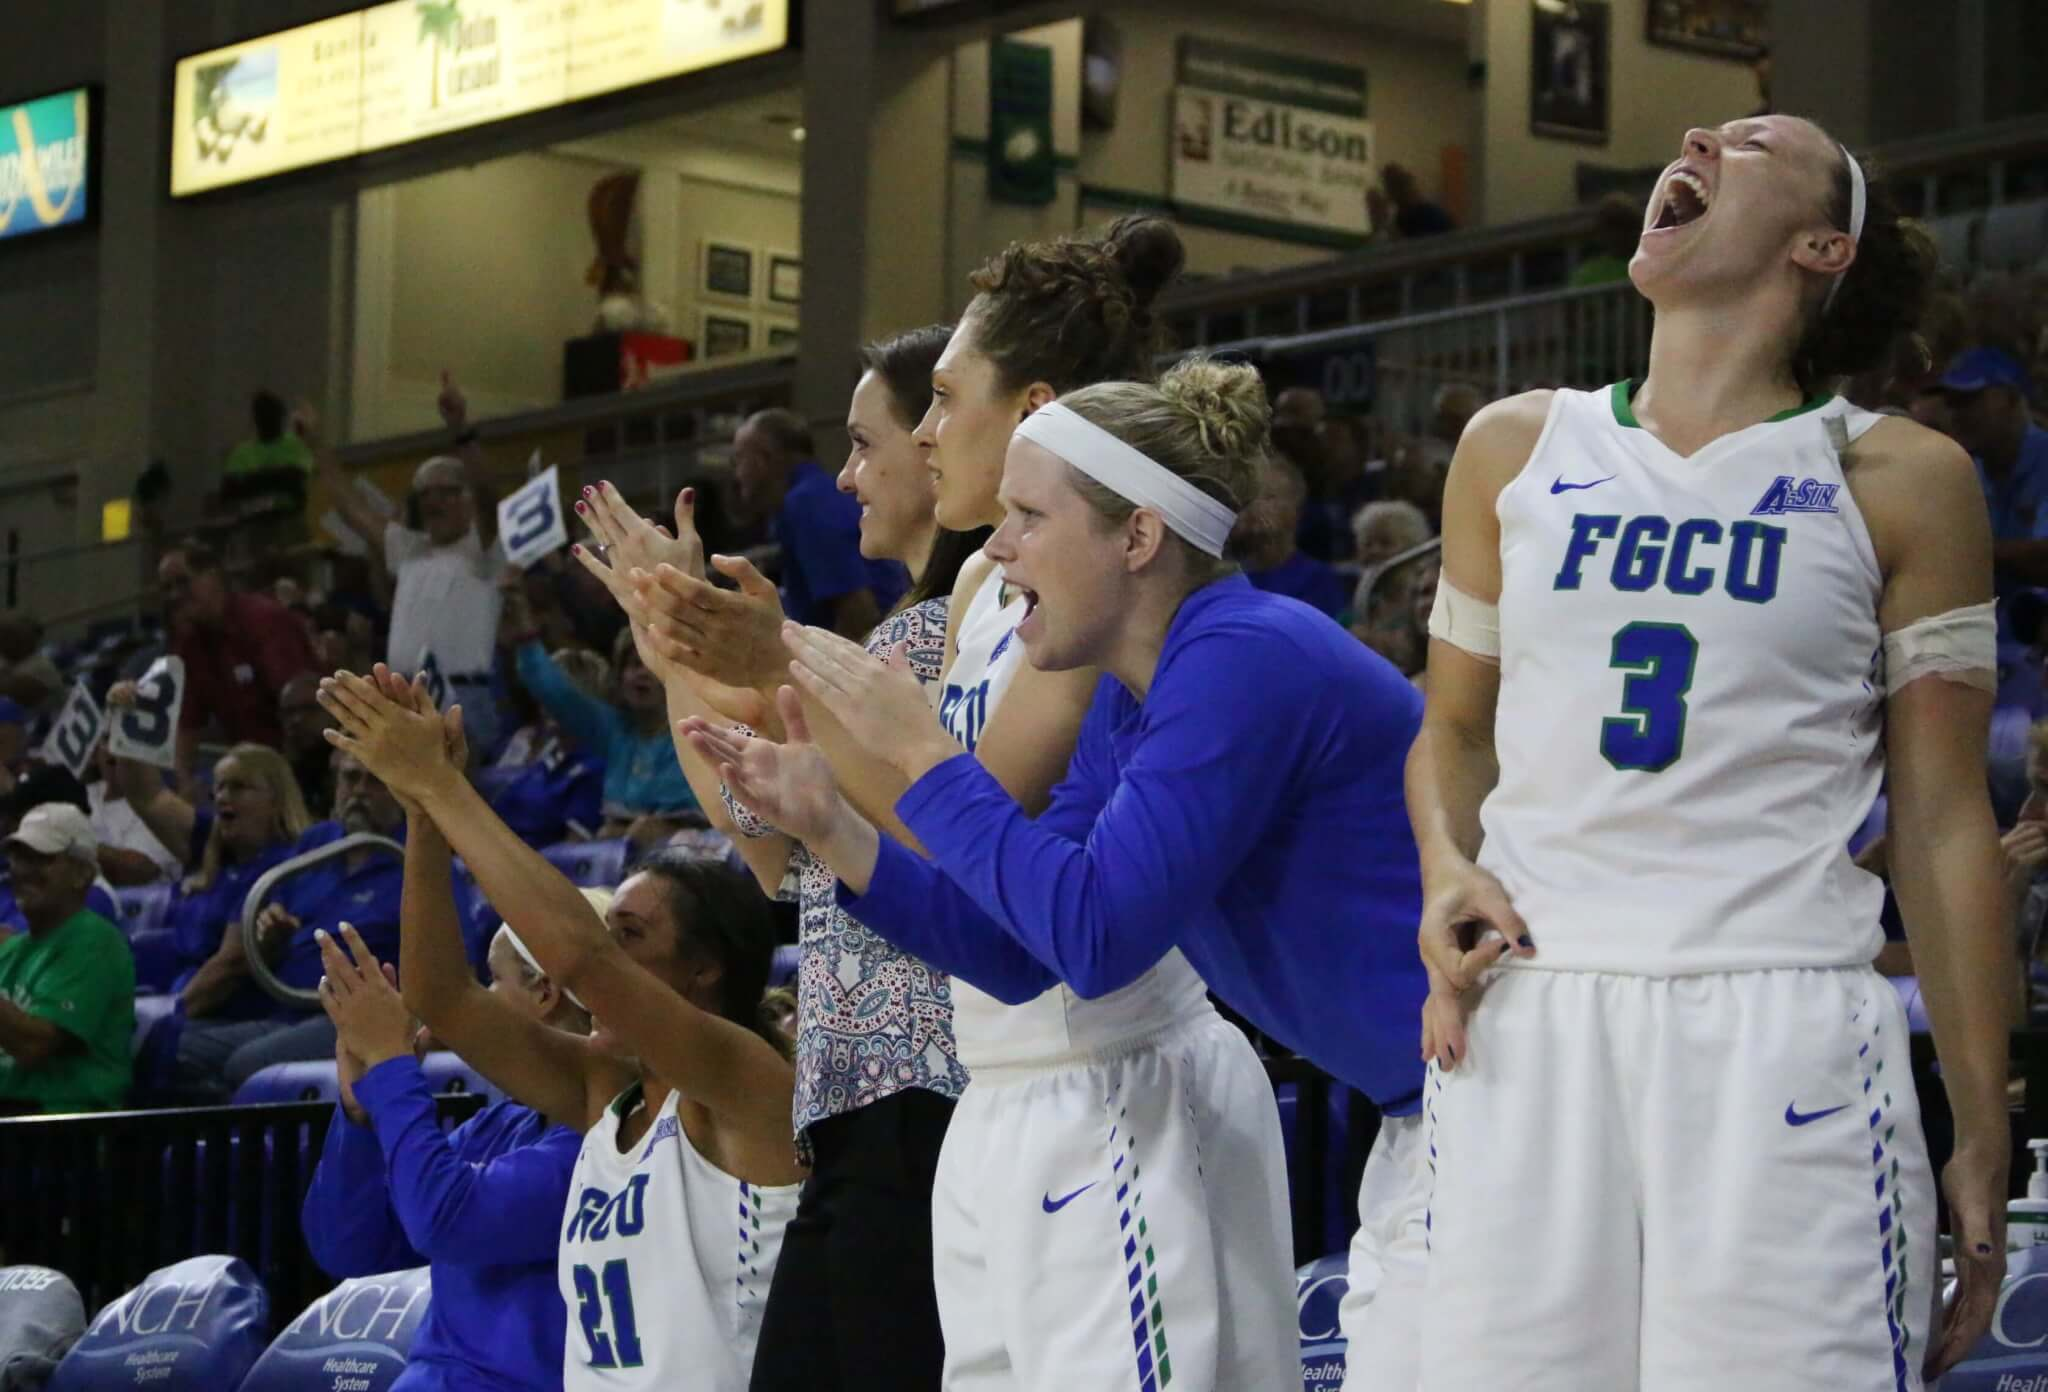 Moving on: FGCU women advance in WNIT with win over Bethune-Cookman